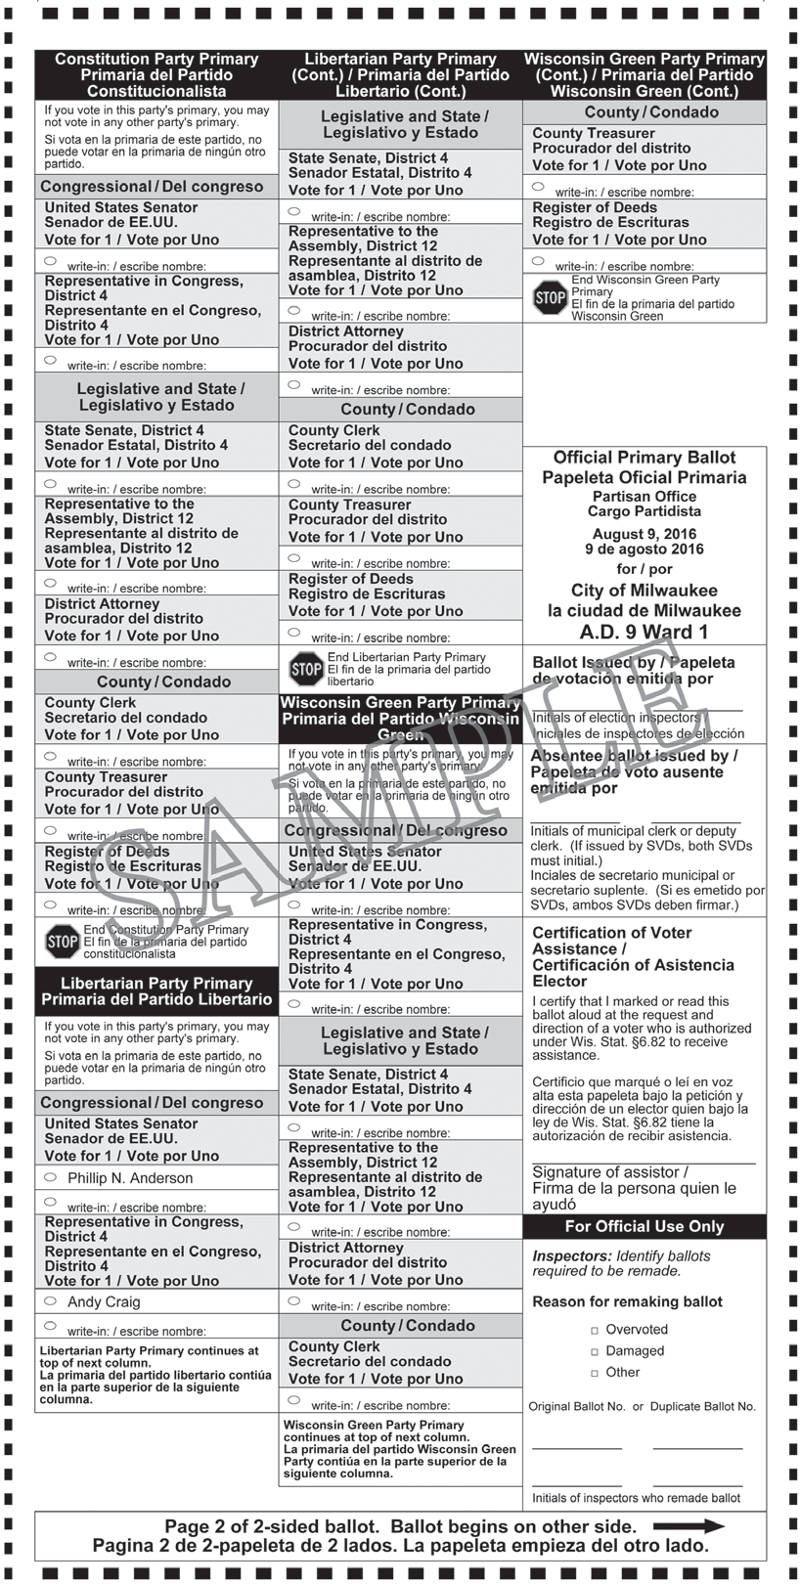 optical-scan-sample-ballot-partisan-office-primary-august-9th-page-2